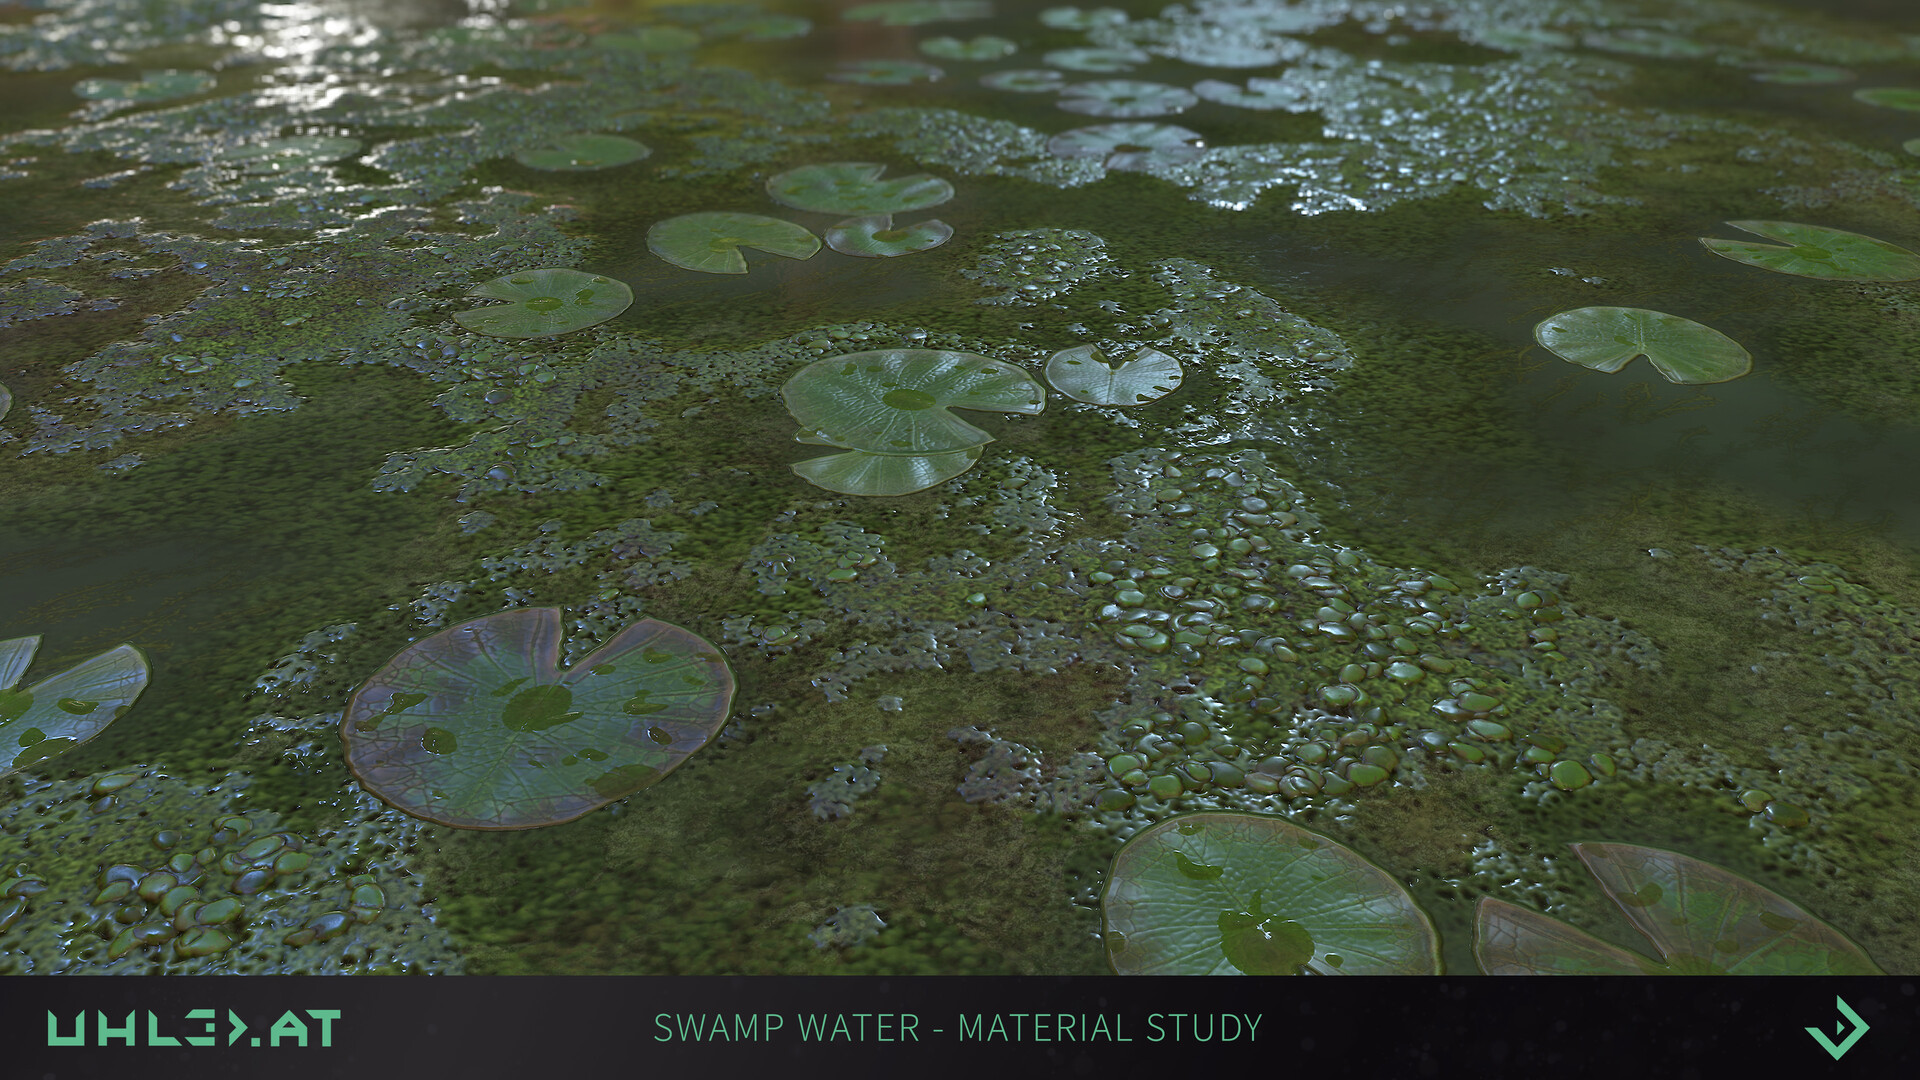 Dominik uhl swamp water 06